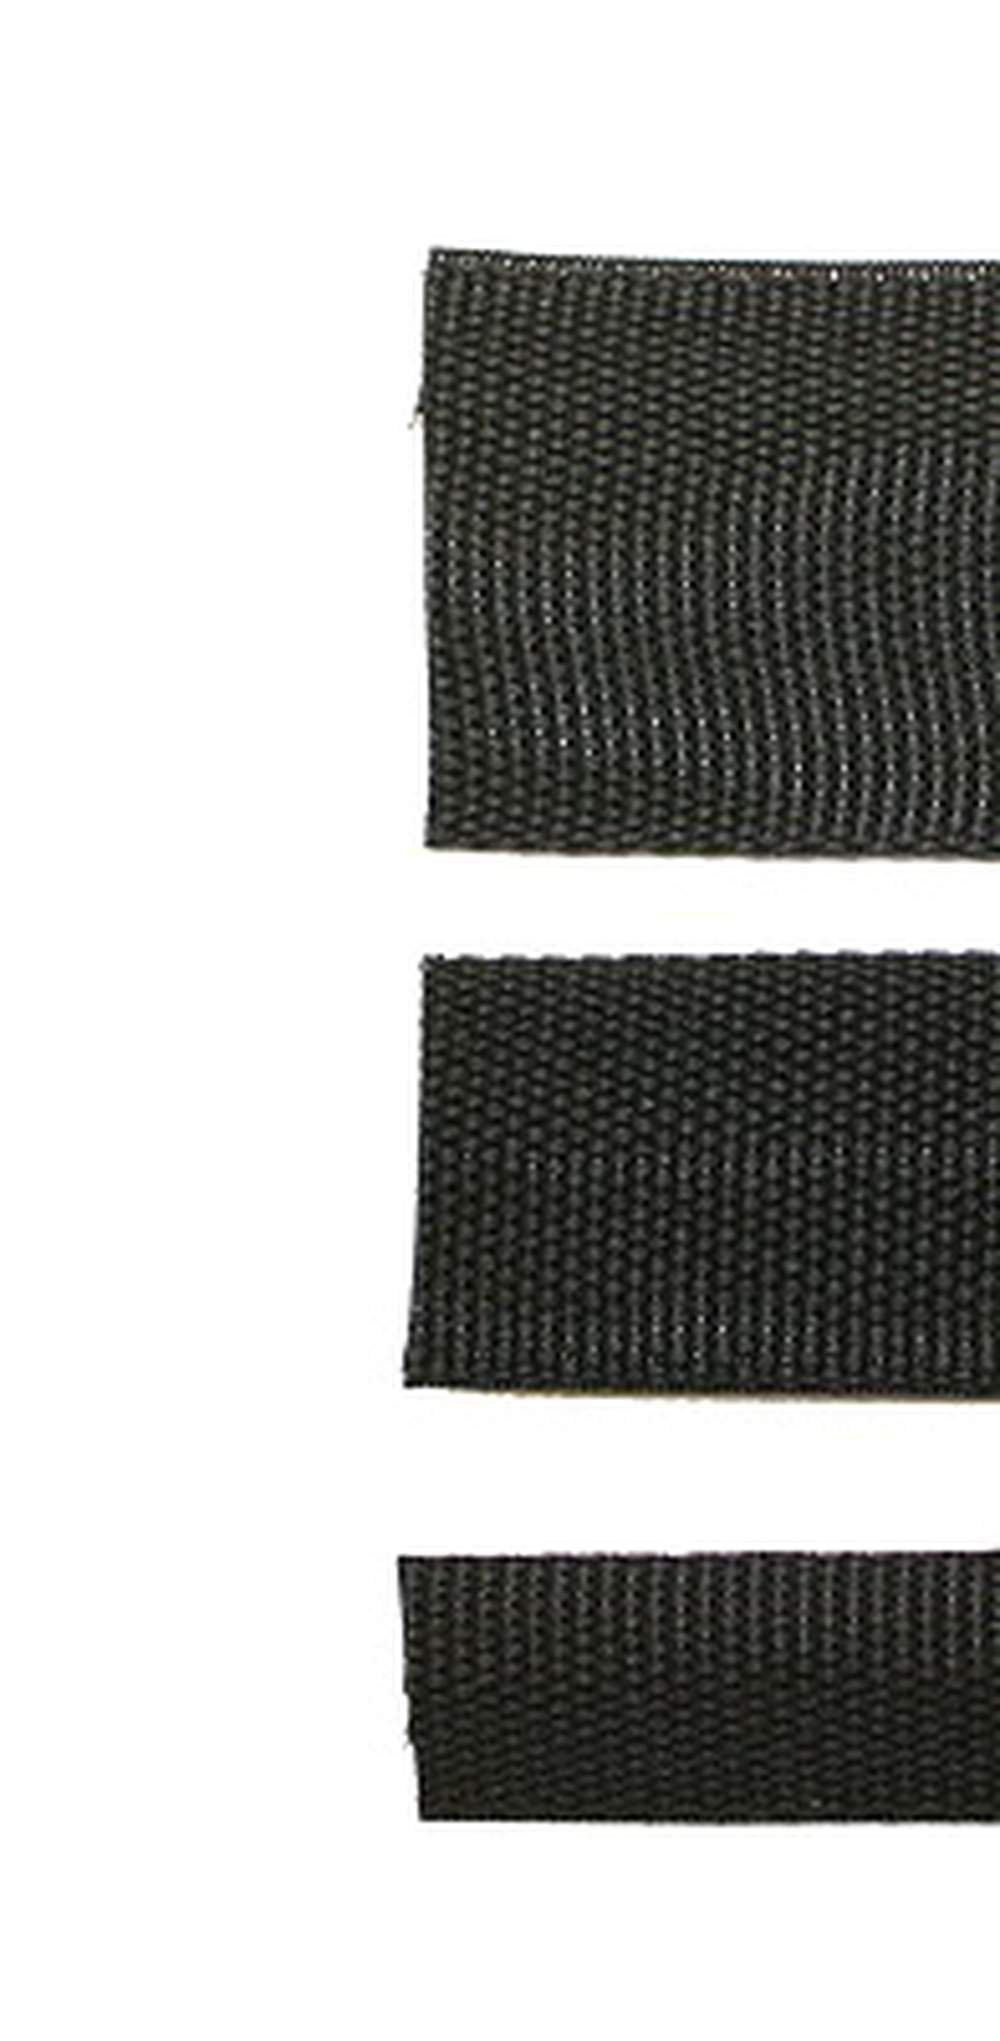 BW-75  3/4 Braided Fabric Heat Shrink Wire Covering - 10 FT